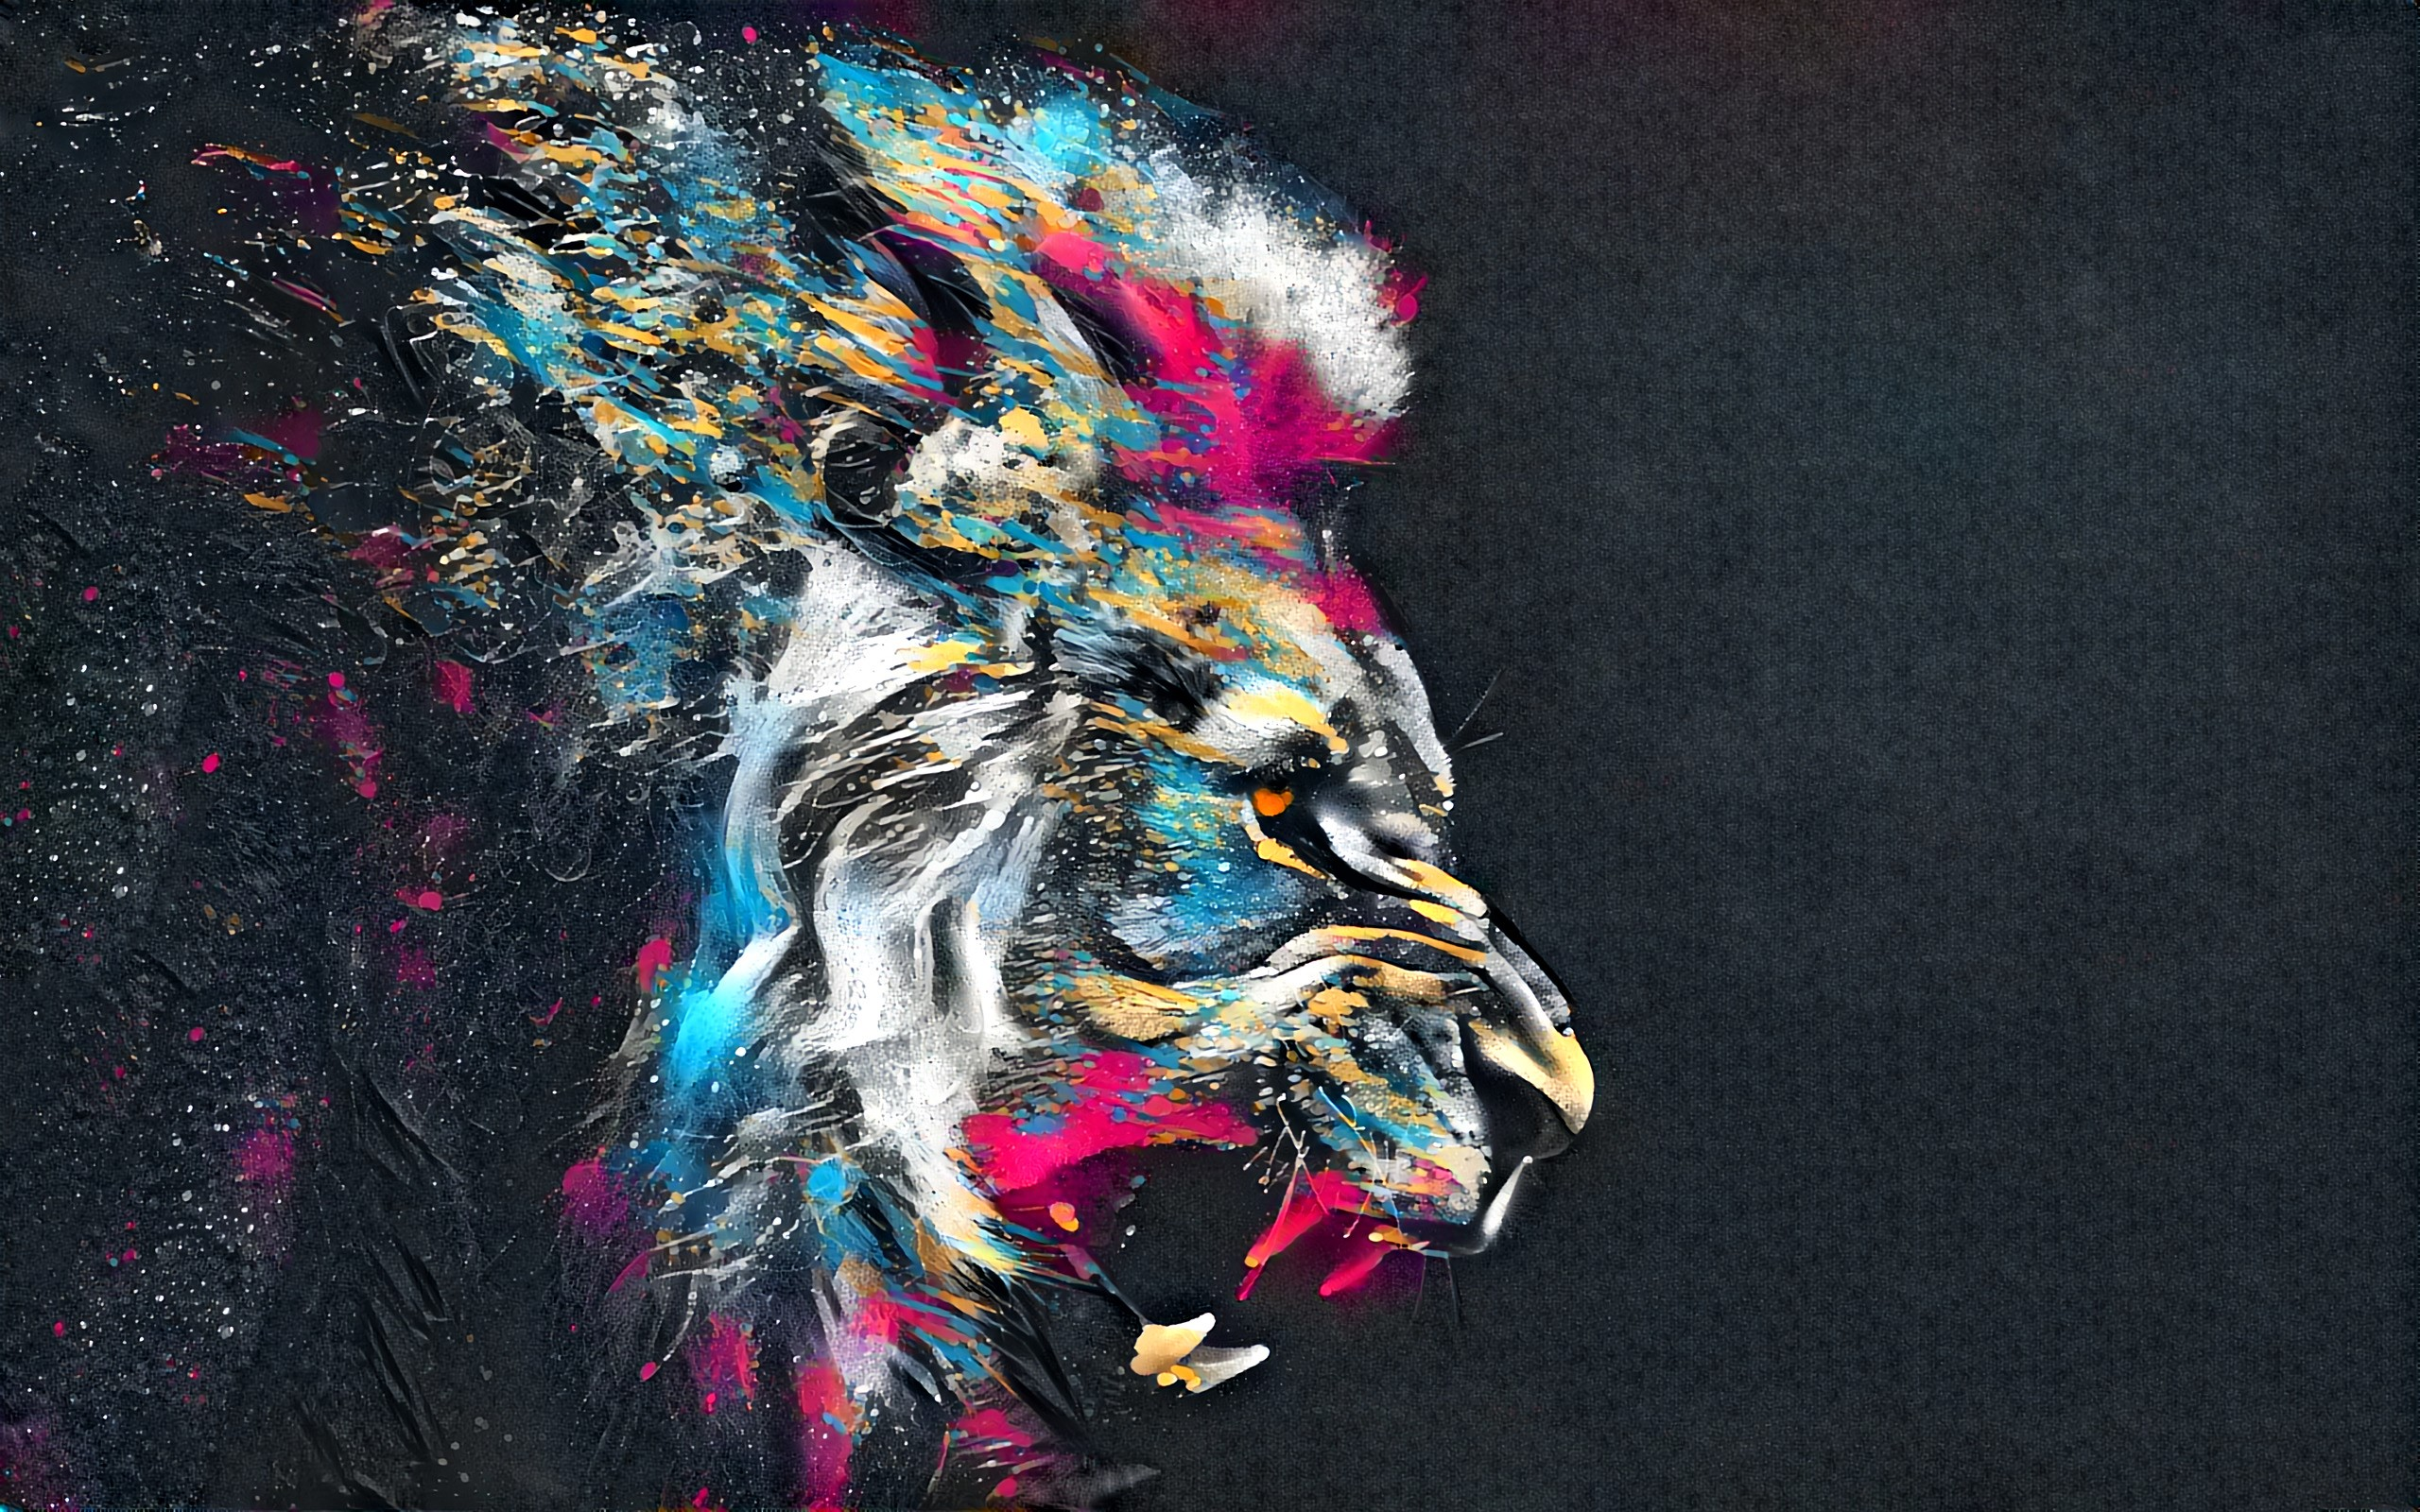 Abstract Artistic Colorful Lion Hd Abstract 4k Wallpapers